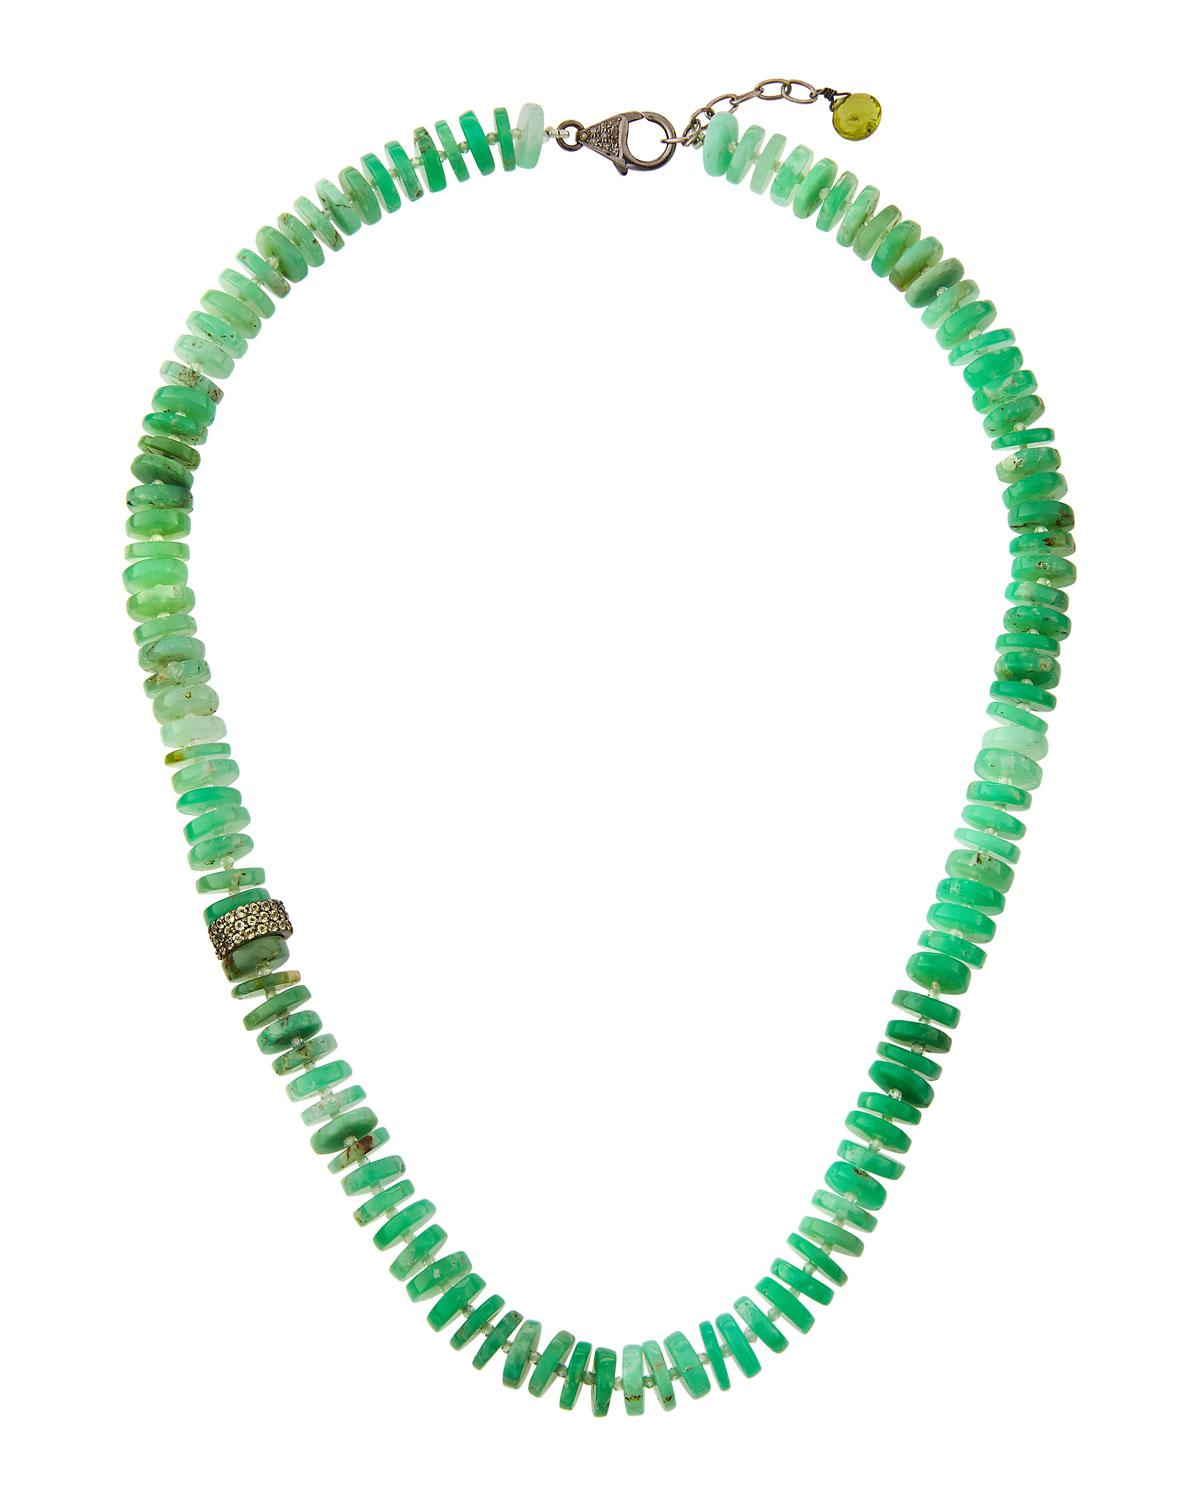 Bavna Chrysoprase Rondelle Necklace 0Ybbg